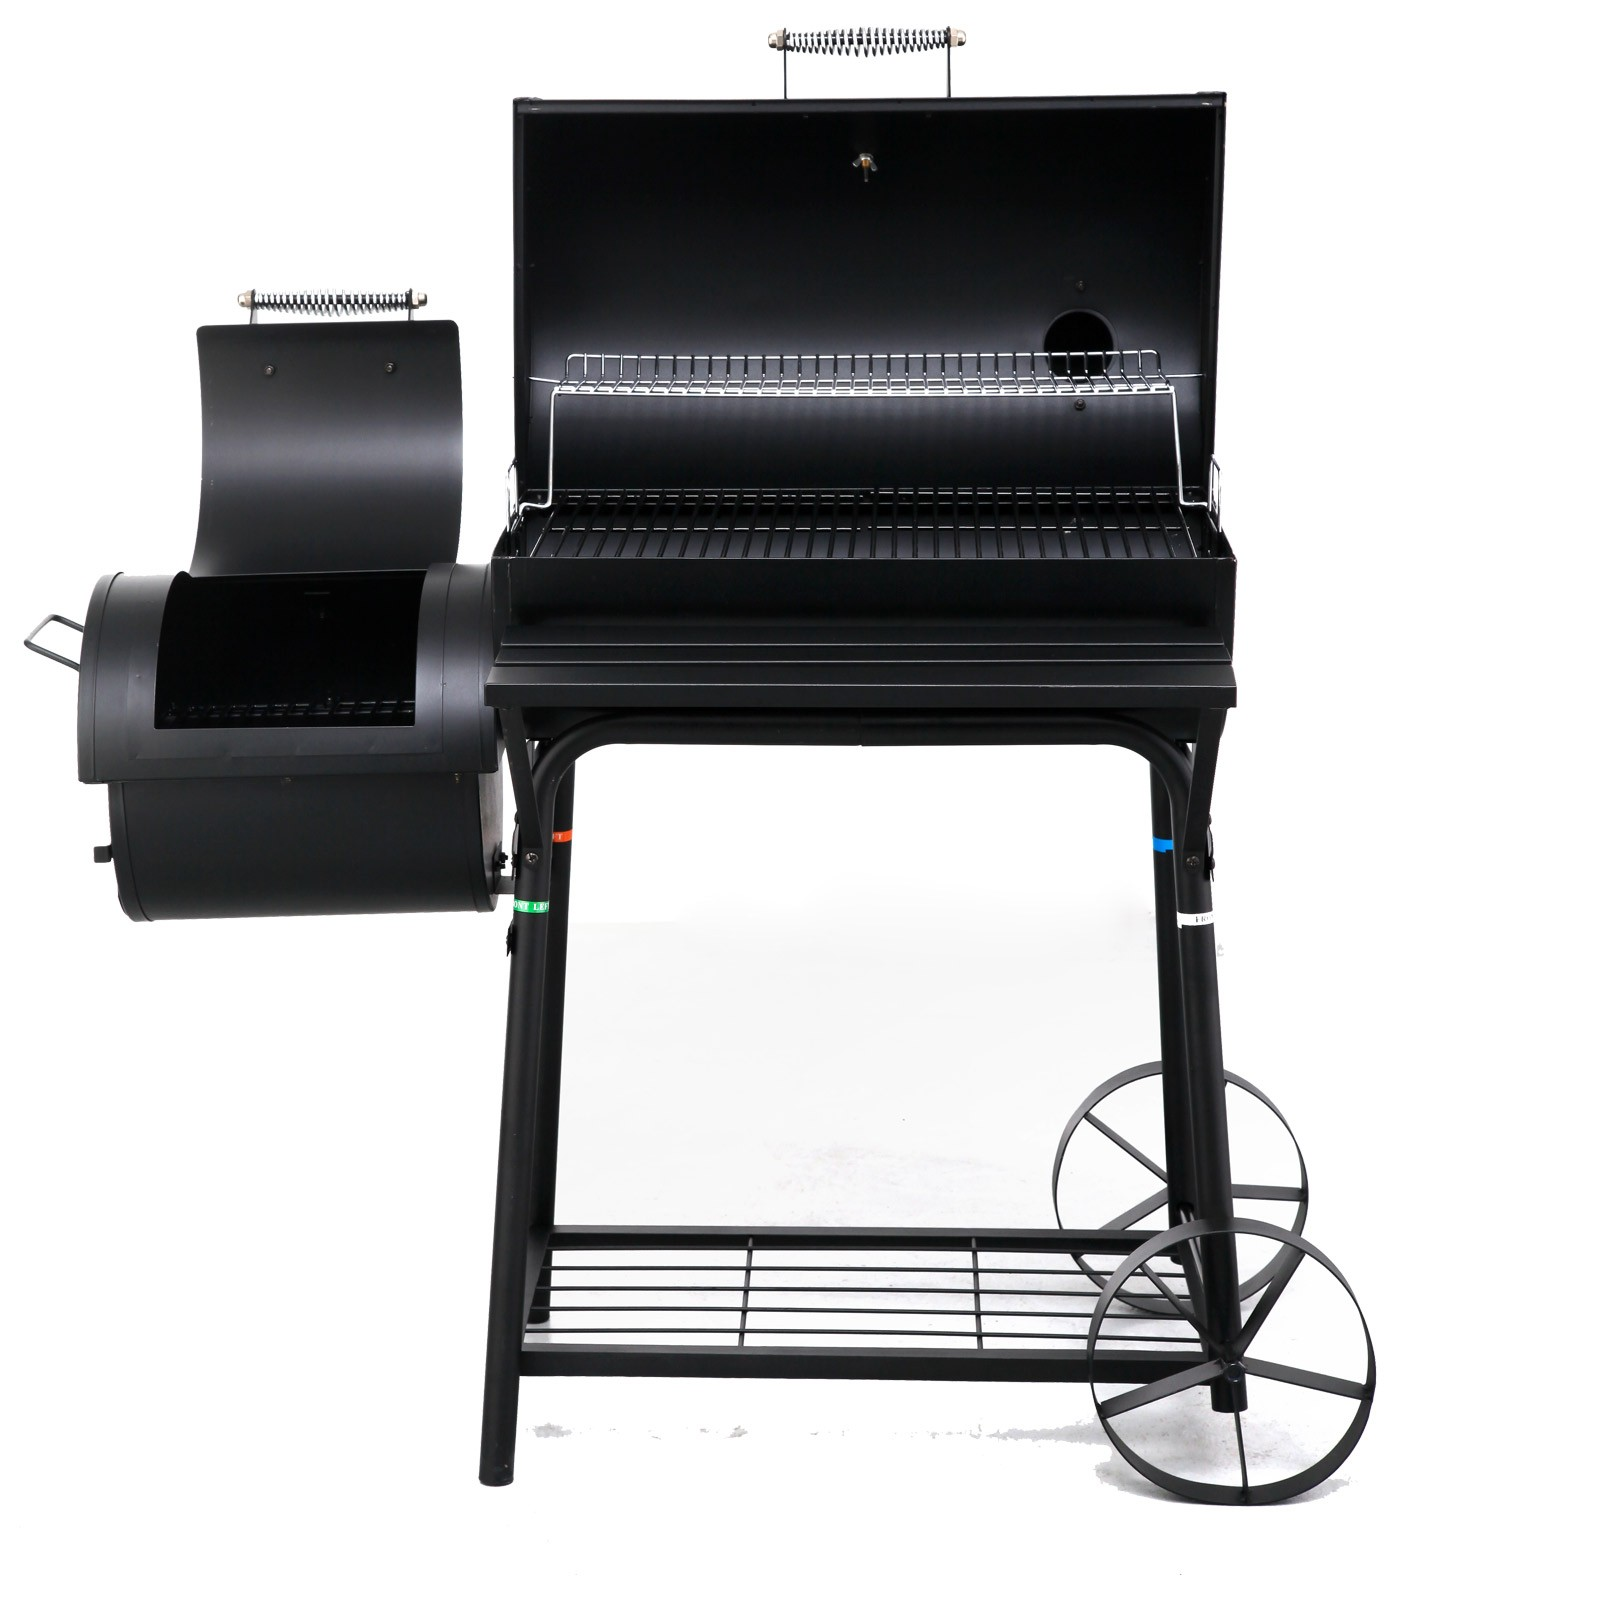 tepro smoker bbq grill biloxi grillwagen grill holzkohlengrill kohlengrill ebay. Black Bedroom Furniture Sets. Home Design Ideas